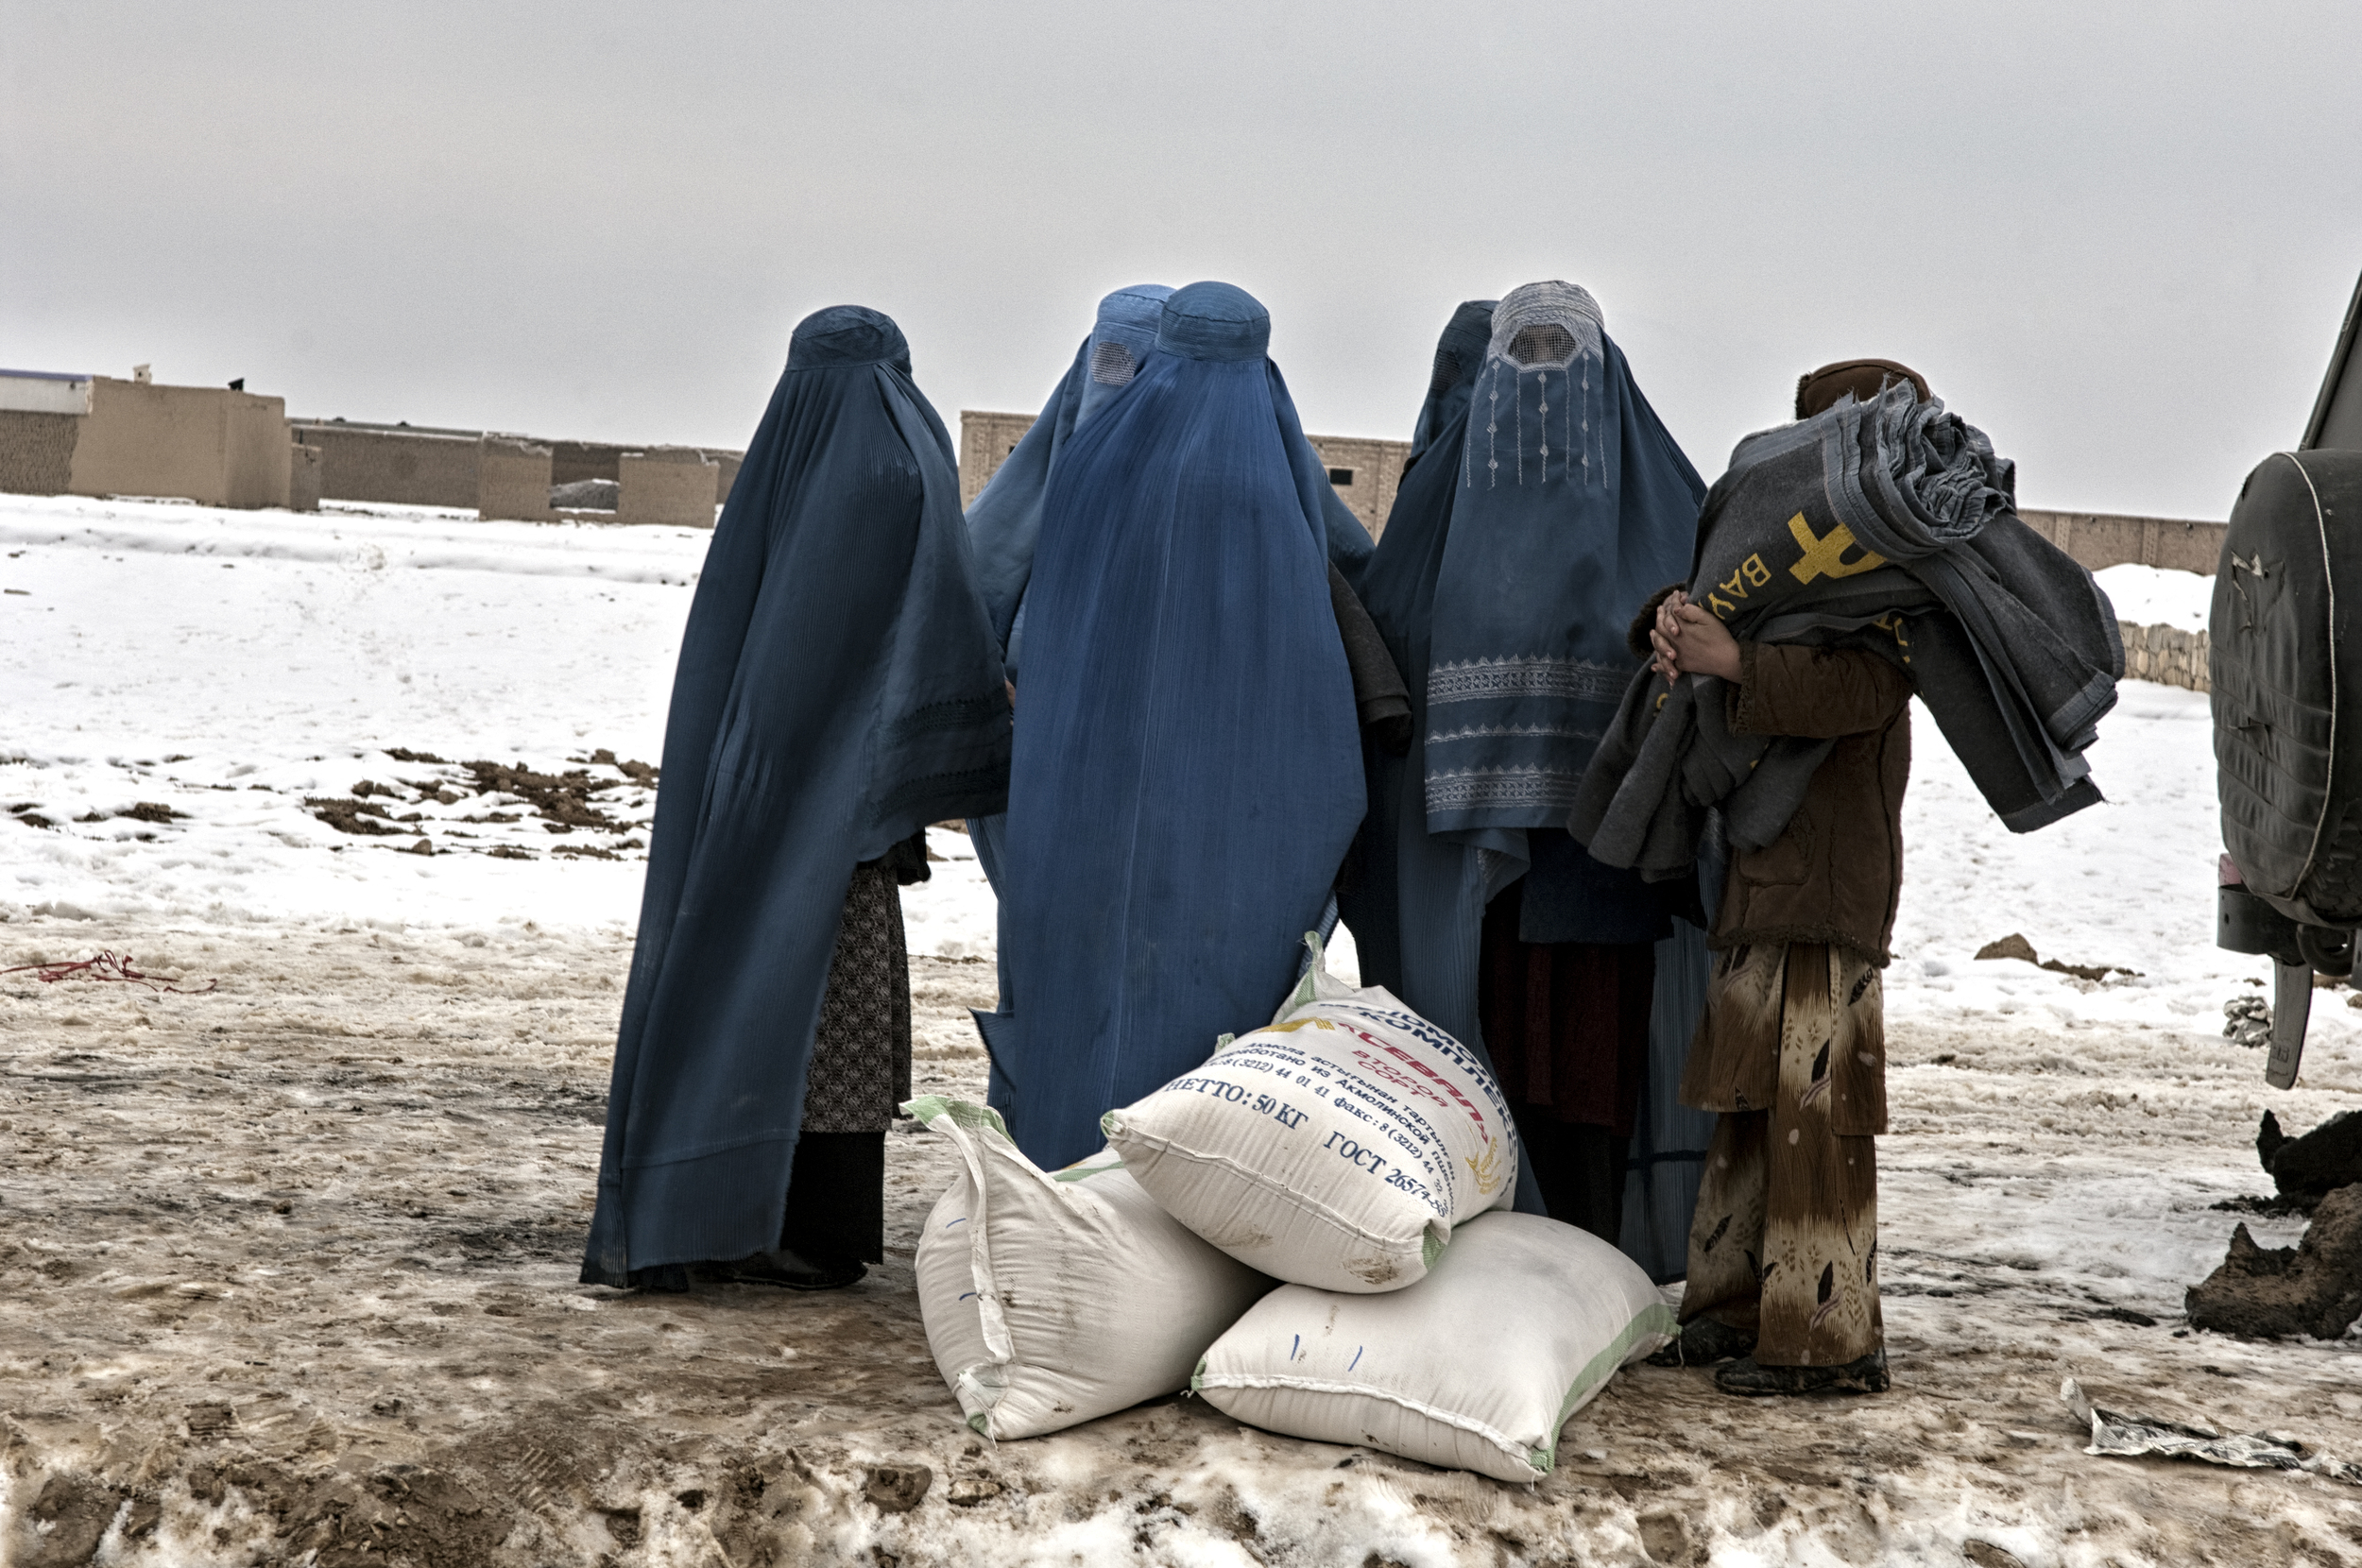 Afghan women collect winterised aid from a distribution point by ACTED in a displacement camp near Pul i Khumri, Baghlan Province, Afghanistan, February 13, 2008. (Photo/Mark Pearson)